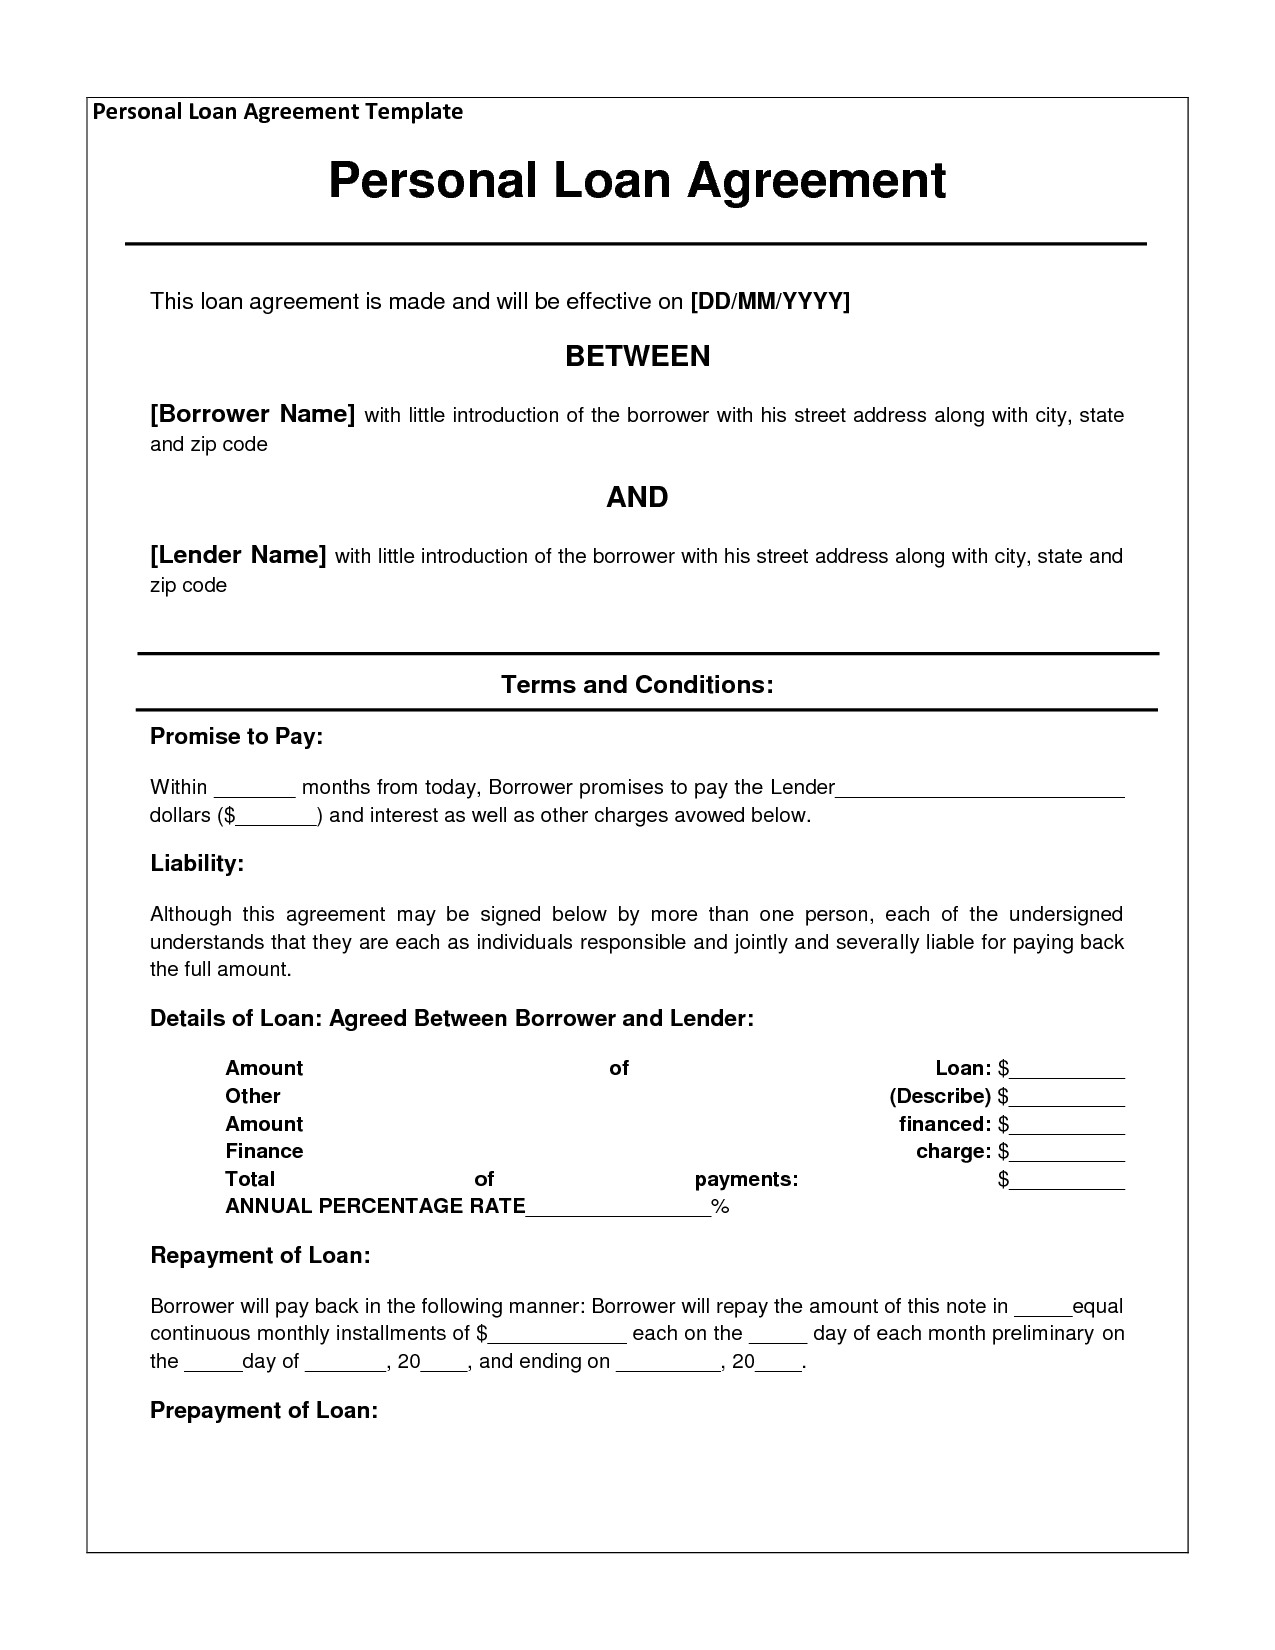 Free family loan agreement template pdf word eforms with money.